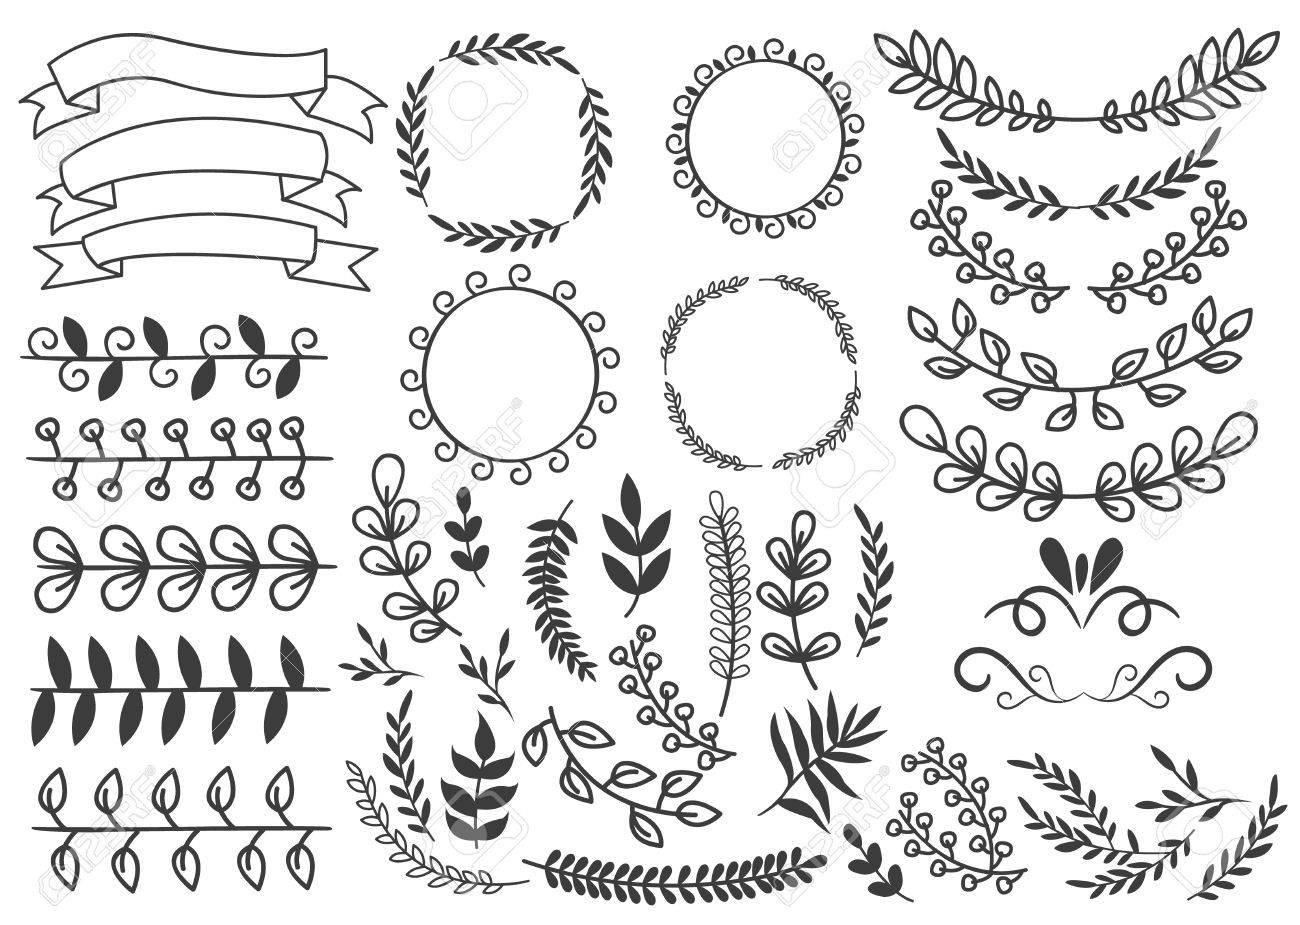 hand drawn decorative elements set with floral ornaments wreaths royalty free cliparts vectors and stock illustration image 60299720 hand drawn decorative elements set with floral ornaments wreaths